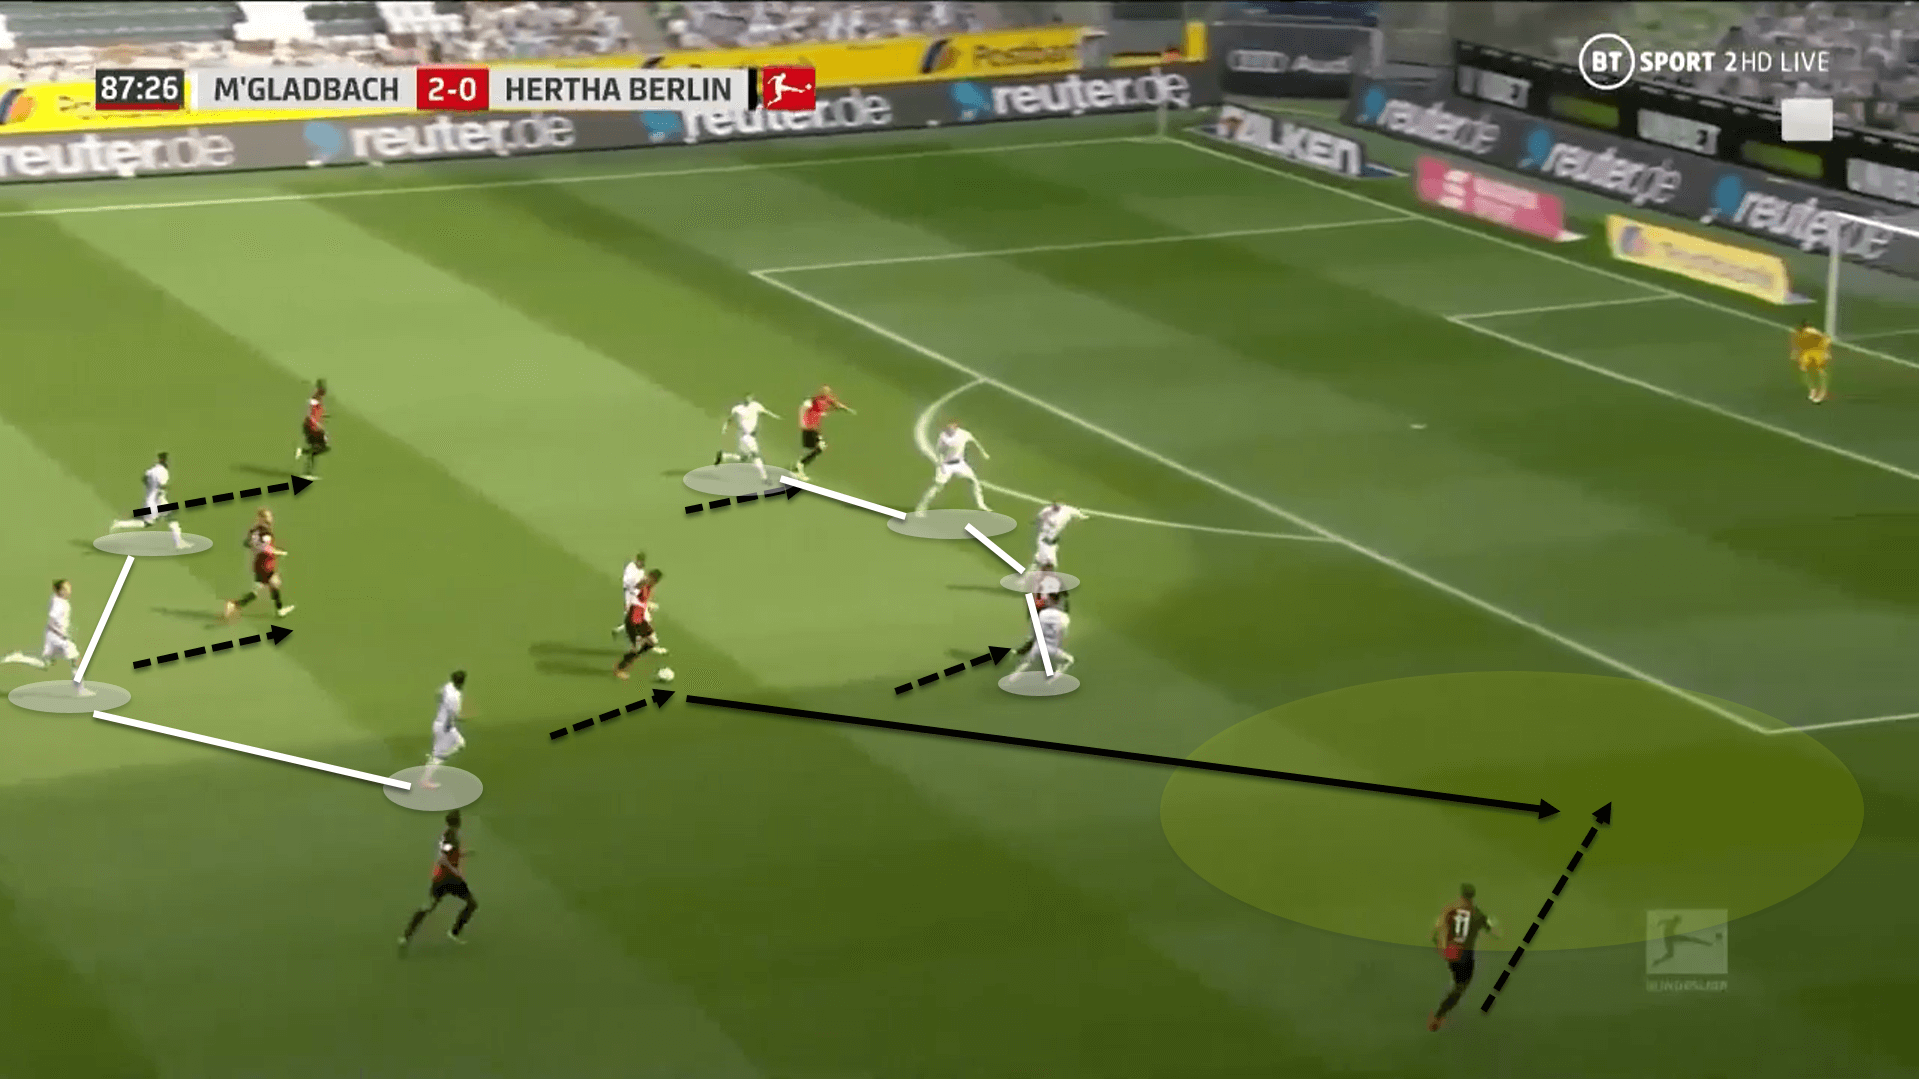 Bundesliga 2019/20: Borussia Monchengladbach vs Hertha Berlin - tactical analysis tactics